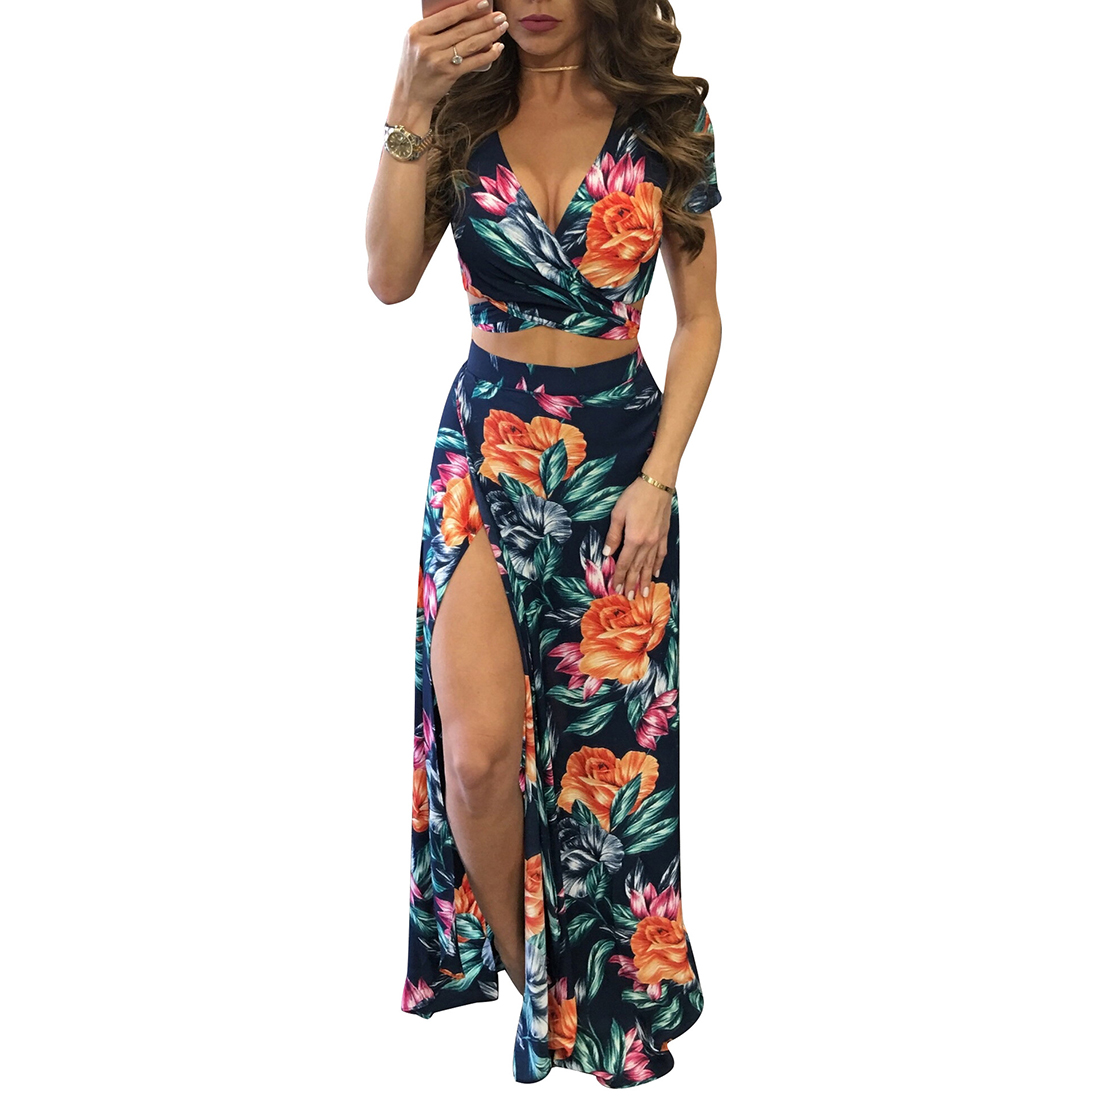 YJSFG HOUSE Elegant Women <font><b>Summer</b></font> Long Maxi Dresses Two Piece <font><b>Set</b></font> <font><b>Sexy</b></font> <font><b>2019</b></font> Hollow Out Crop Top Skirts Floral Print 2 Piece Suits image